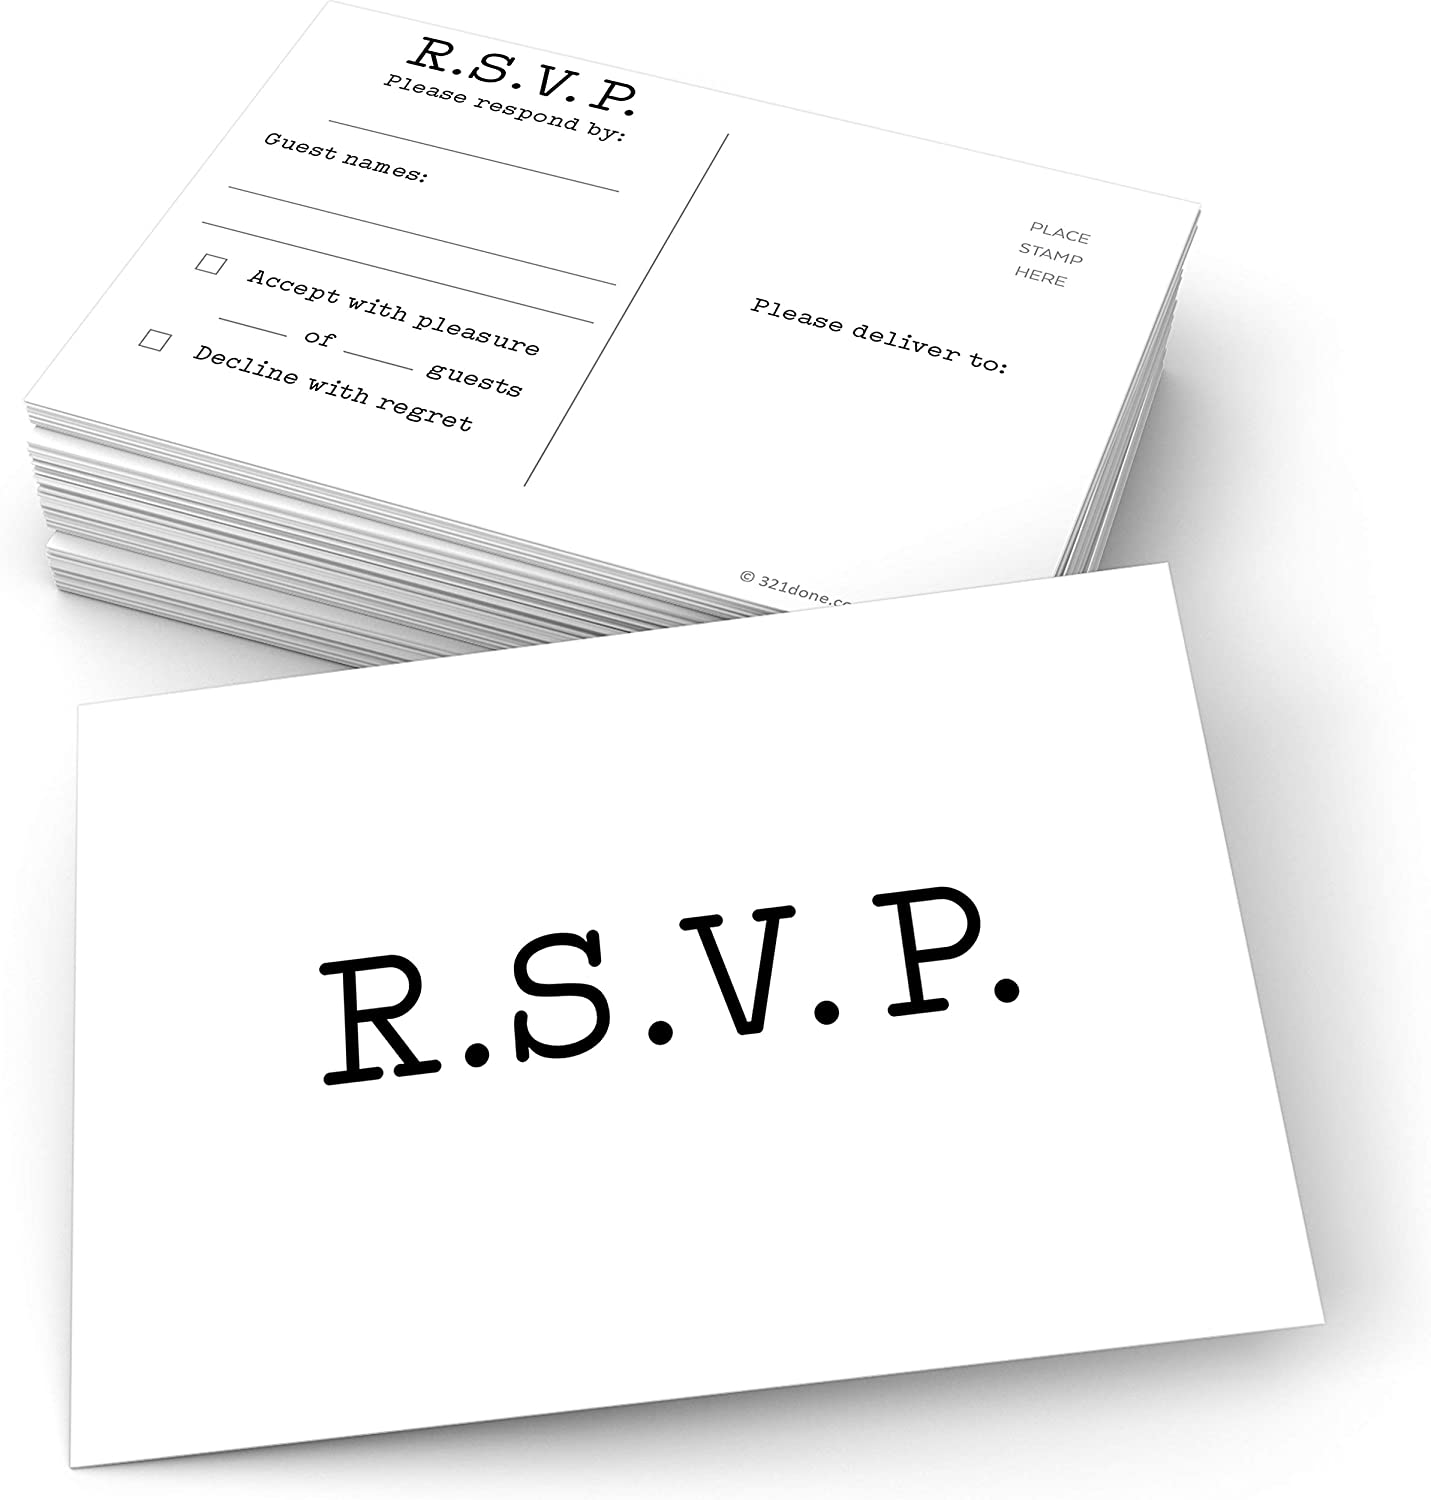 321Done RSVP Postcards (Set of 50) White Typewriter Vintage Large 4x6, USPS Post Office Addressing Response Cards for Wedding, Baby Shower, Party Guest Count - Made in USA – Minimalist Classic